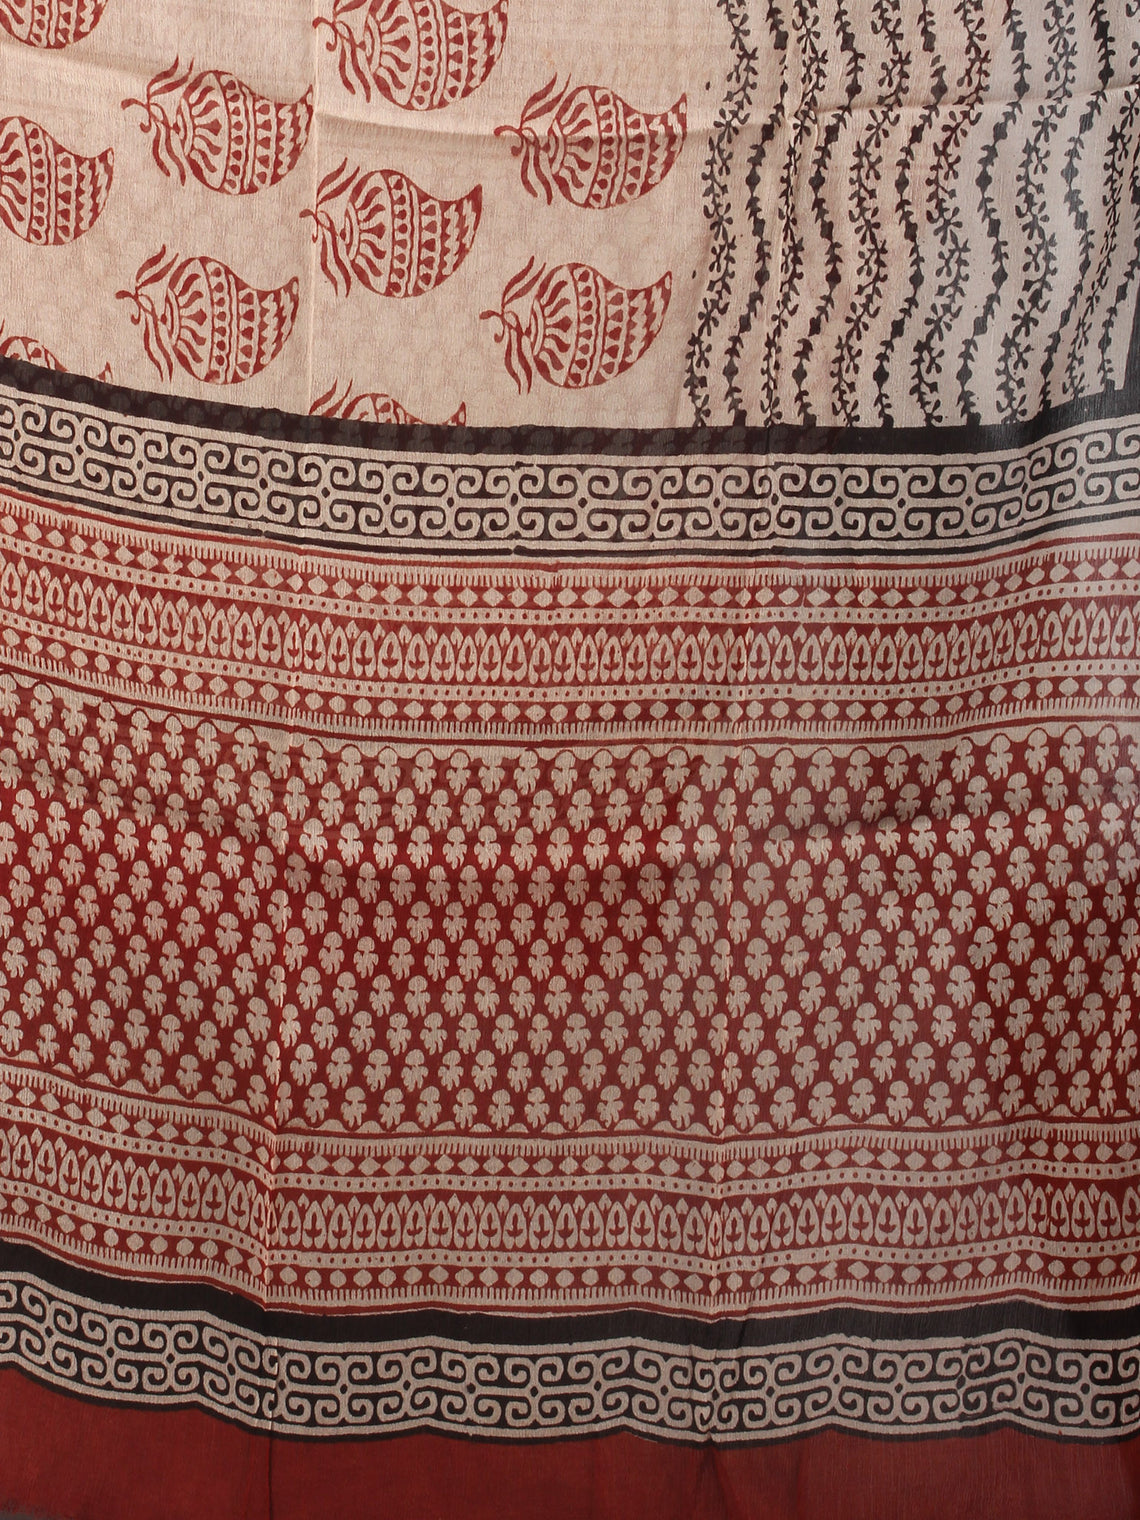 Red Beige Black Hand Block Printed Cotton Suit-Salwar Fabric With Chiffon Dupatta - S1628037